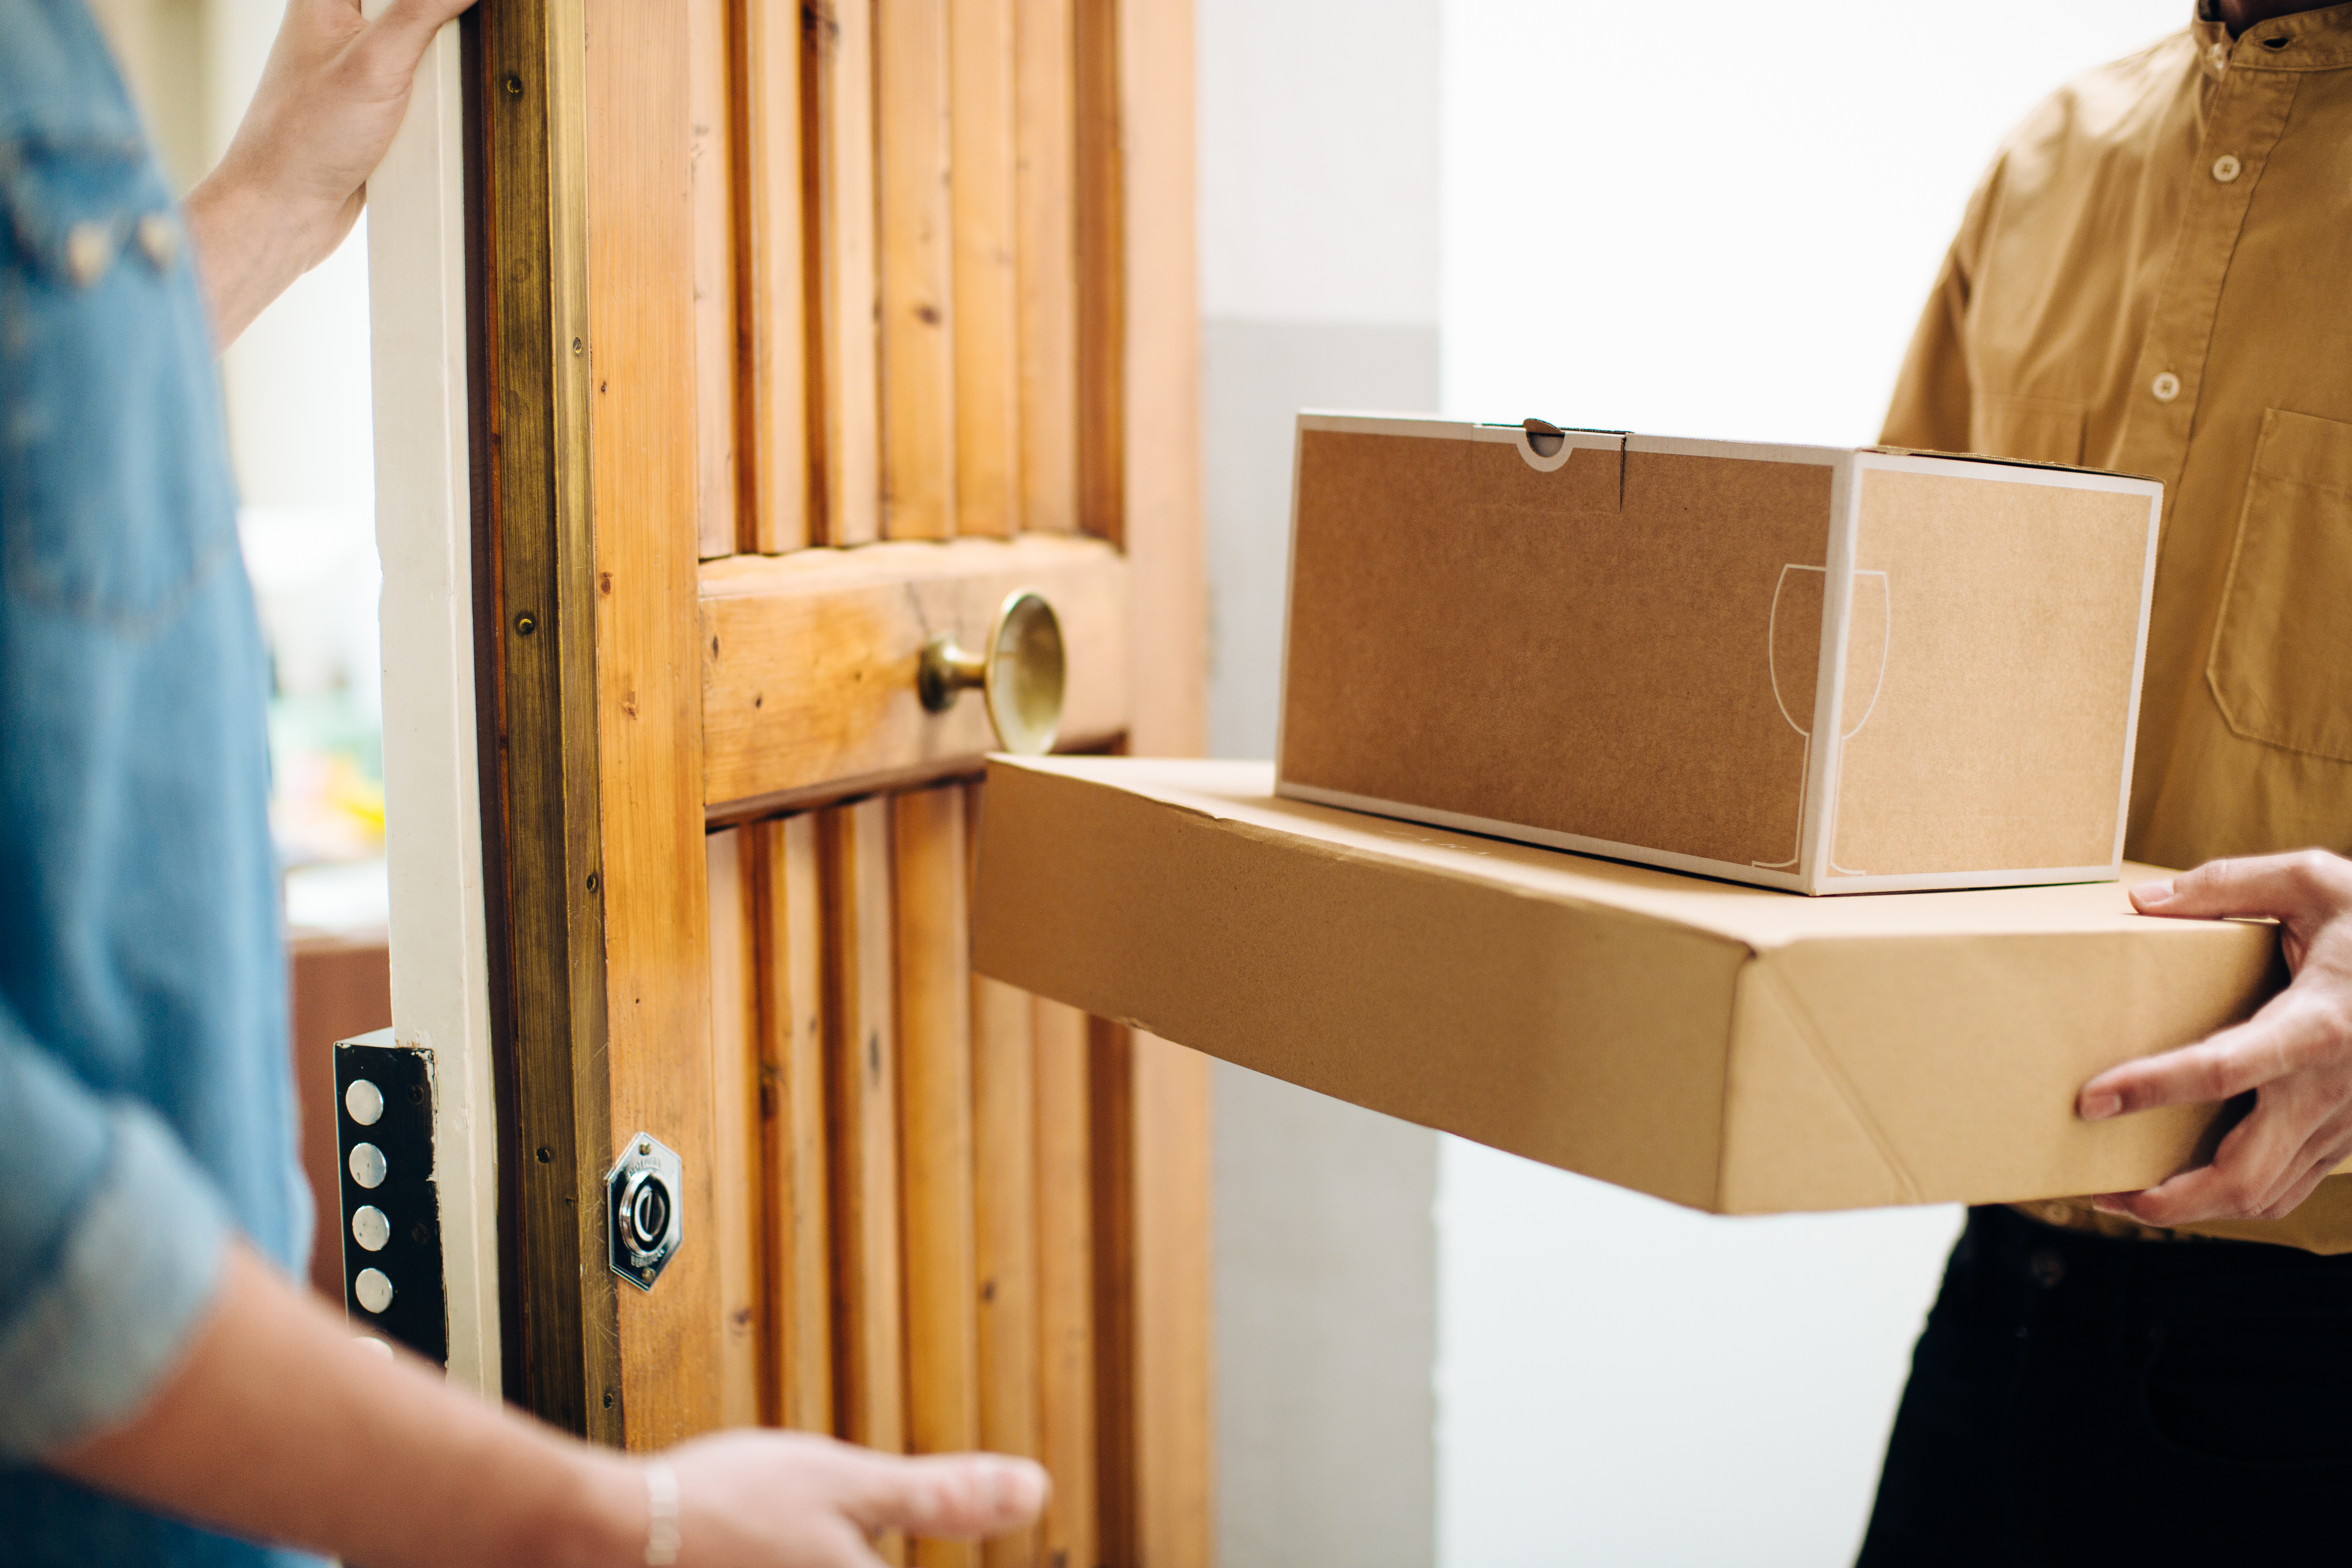 How to Refuse a FedEx Package | Bizfluent